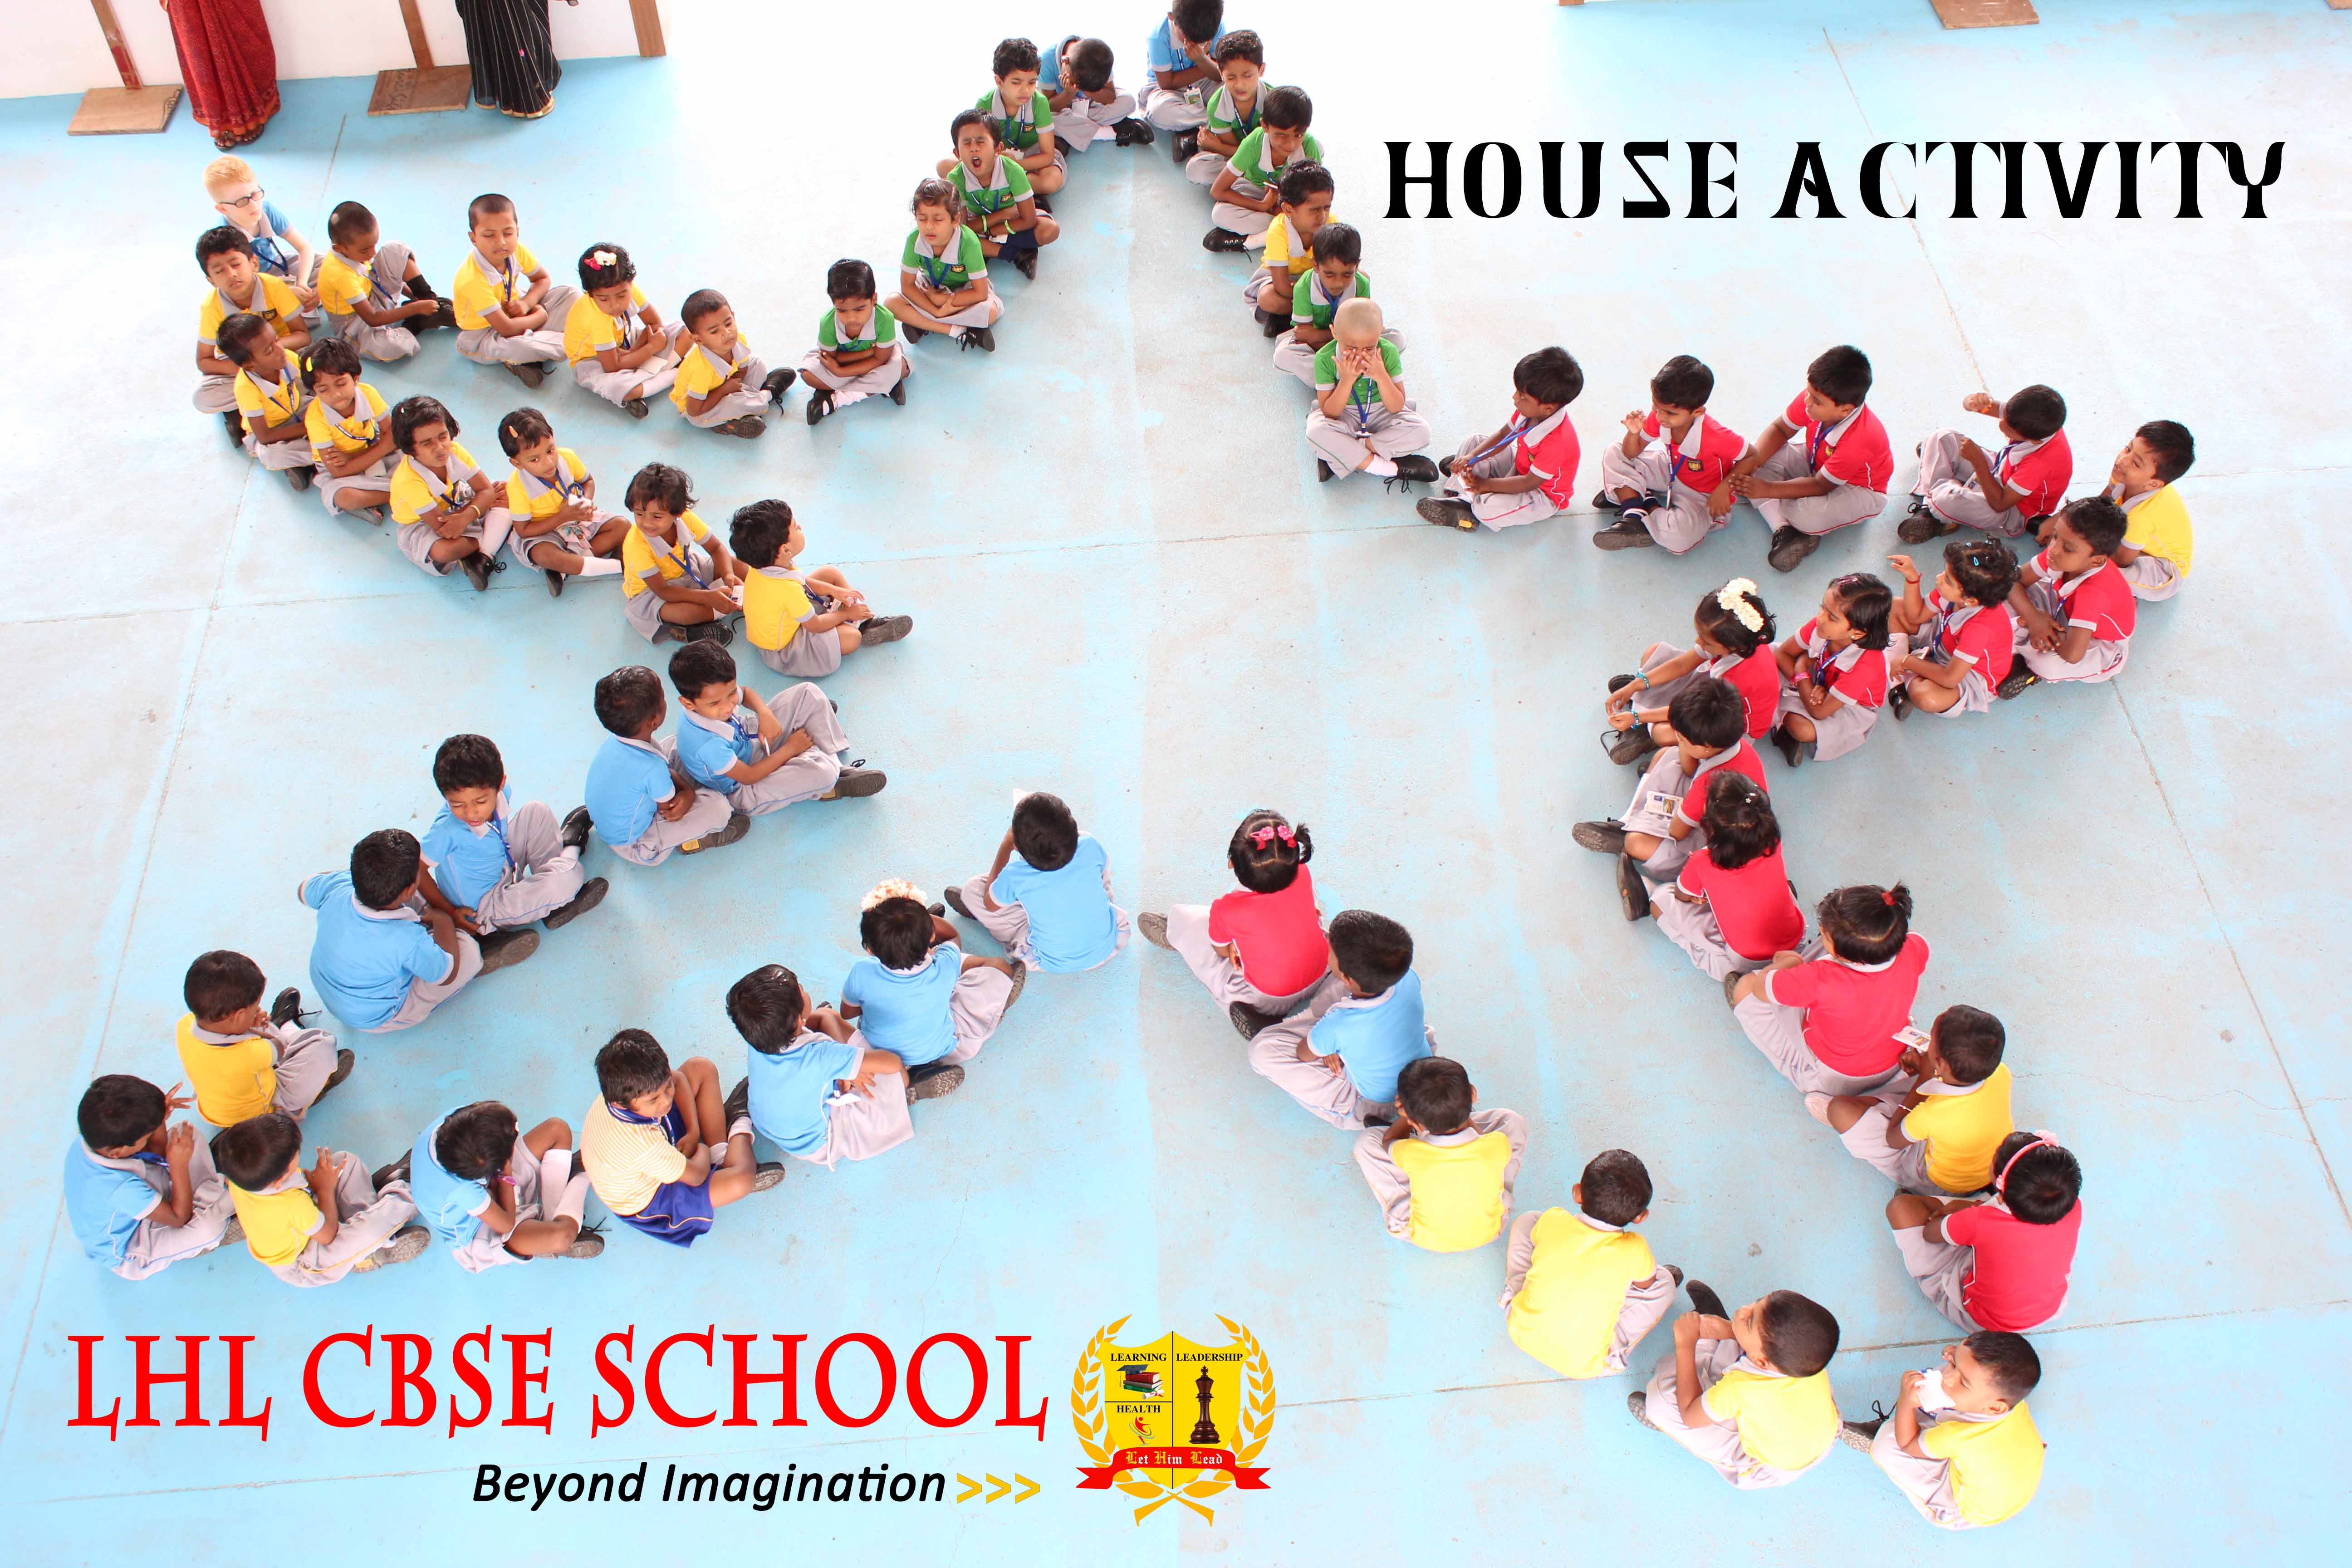 lhl-house activity